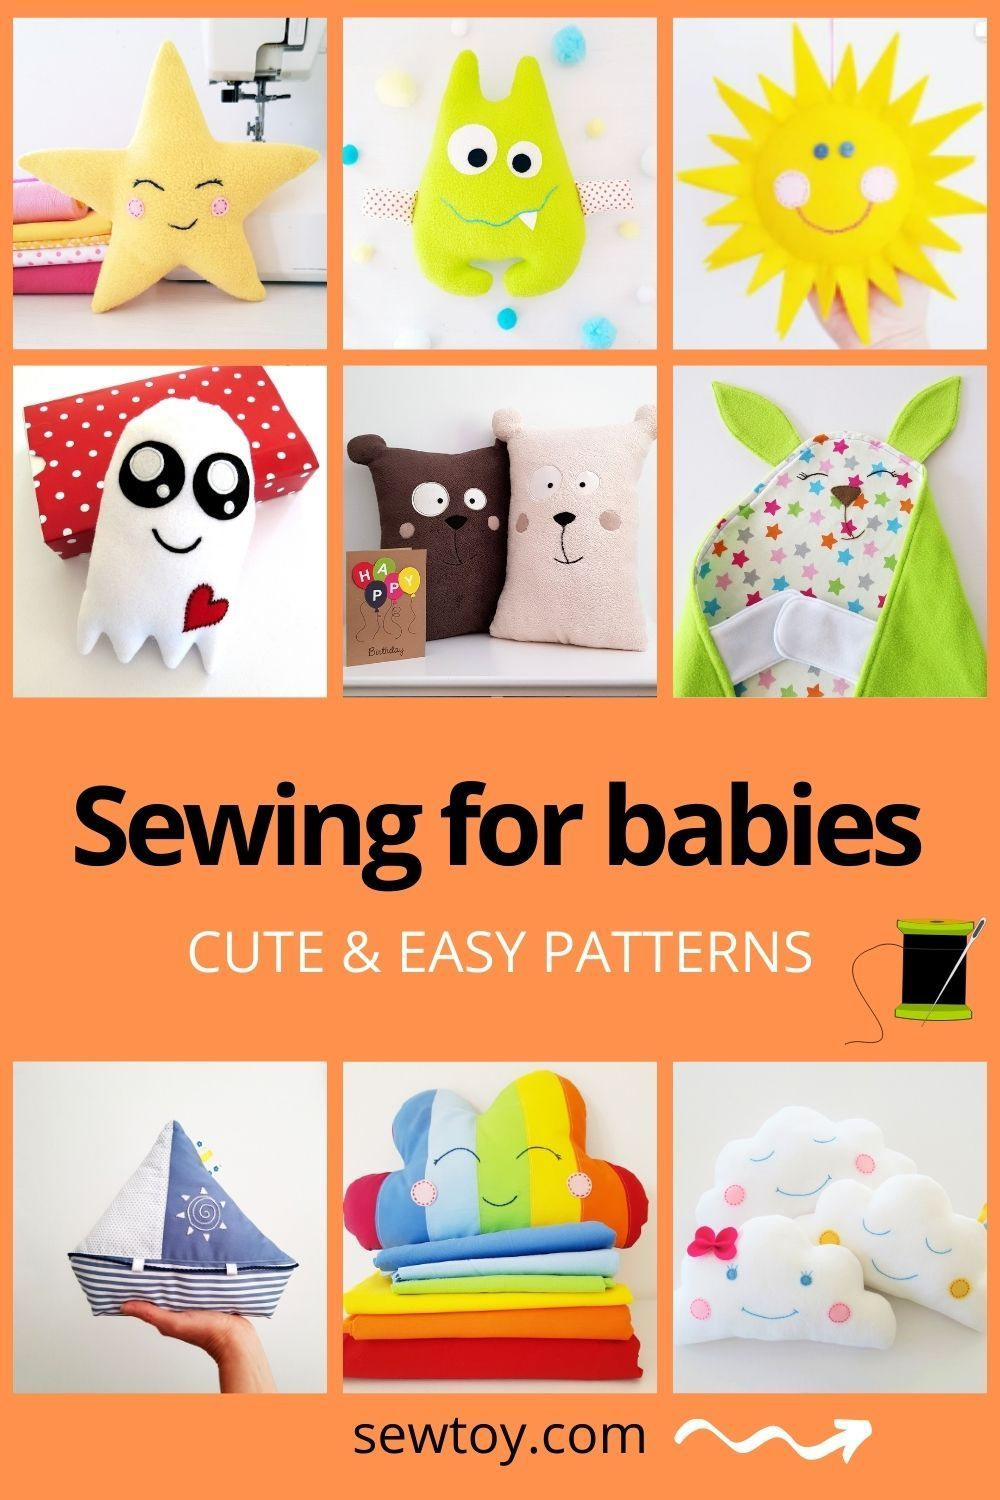 Easy baby sewing projects for beginners for stuffed toys, soft toys, softies, plushies. Detailed